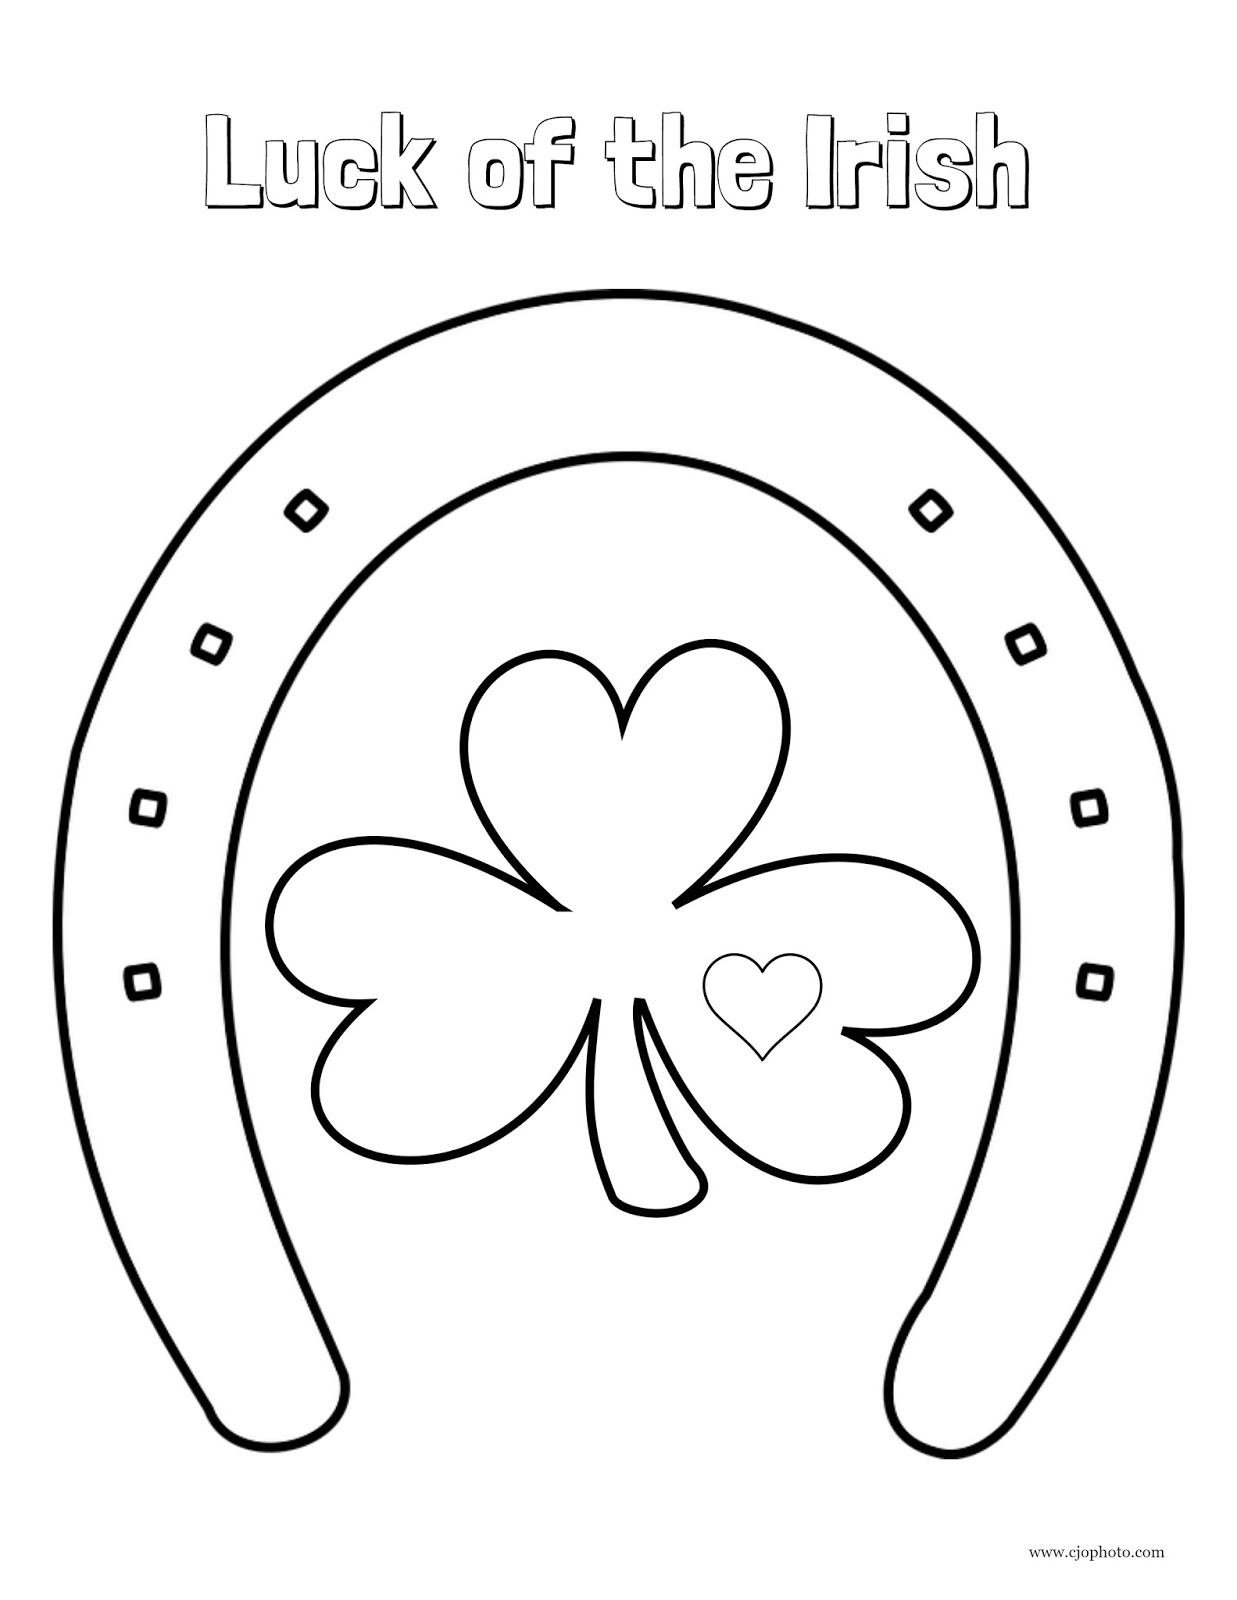 Free Printable St. Patrick's Day Coloring Pages | i should be ... | 1600x1237